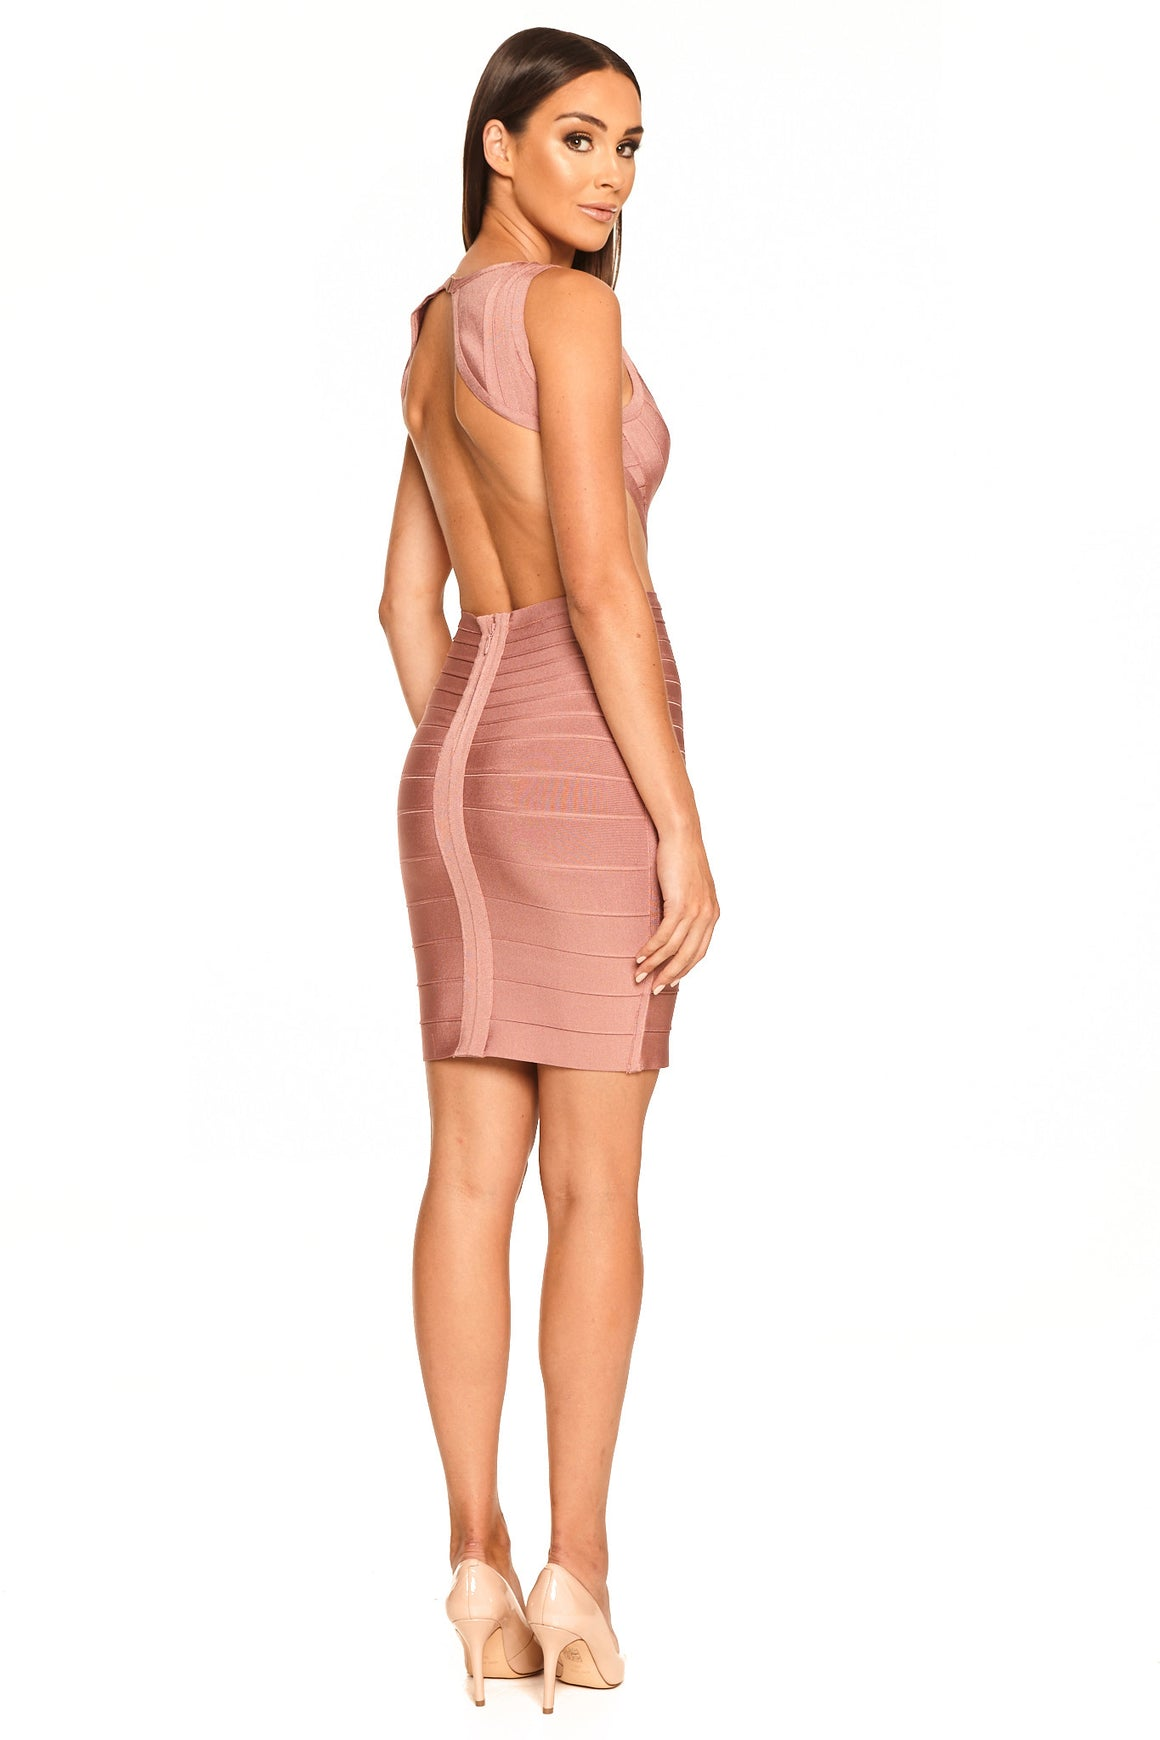 Kaylenne Cutout Bandage Dress